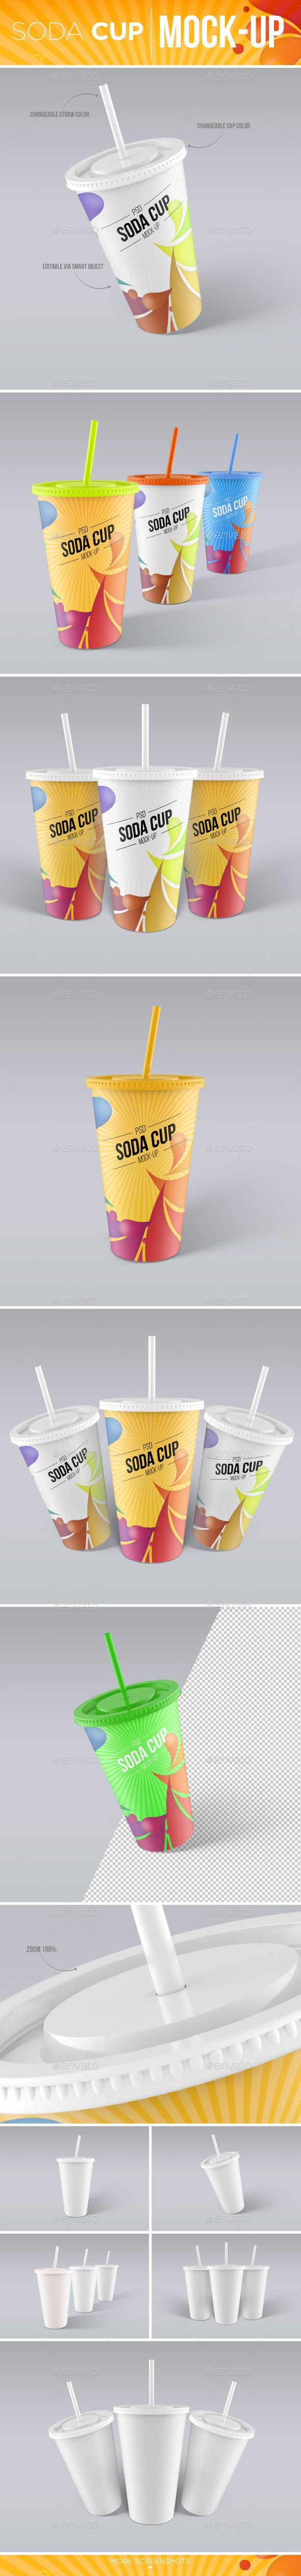 Soda Cup Mock-Up  PSD Template • Download ➝ https://graphicriver.net/item/soda-cup-mockup/12268553?ref=pxcr